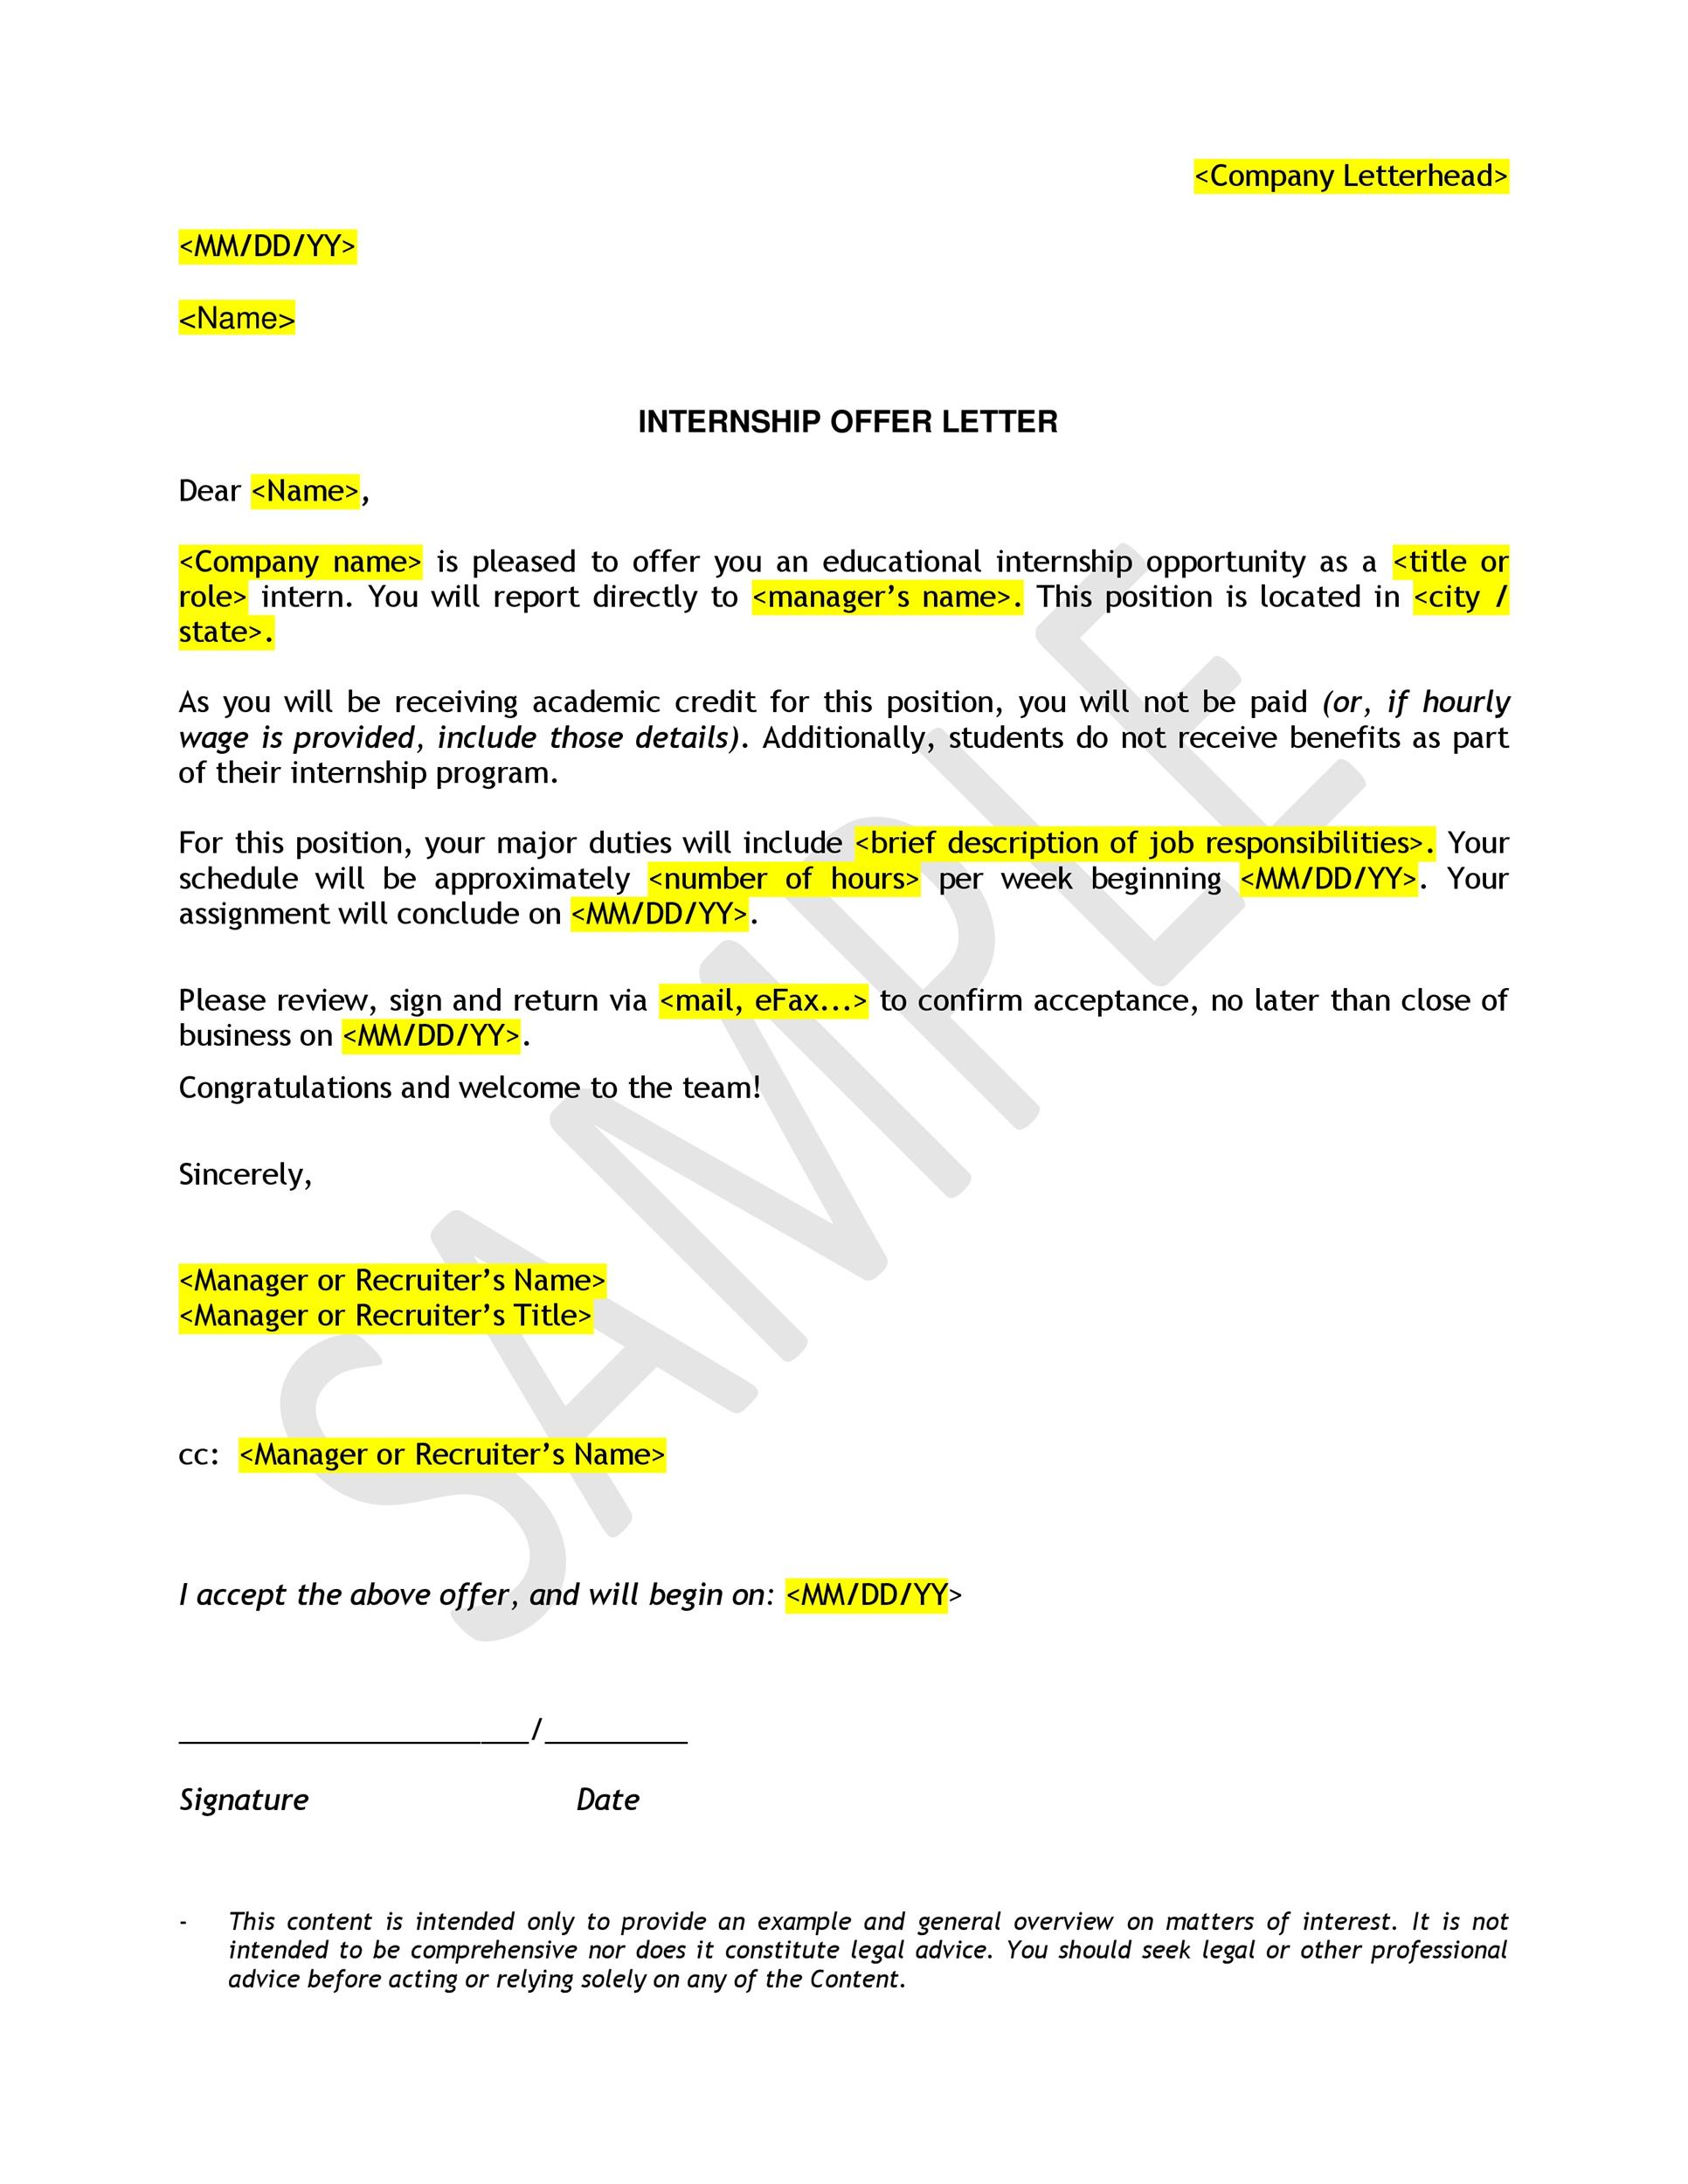 fantastic offer letter templates employment counter offer job offer letter 33